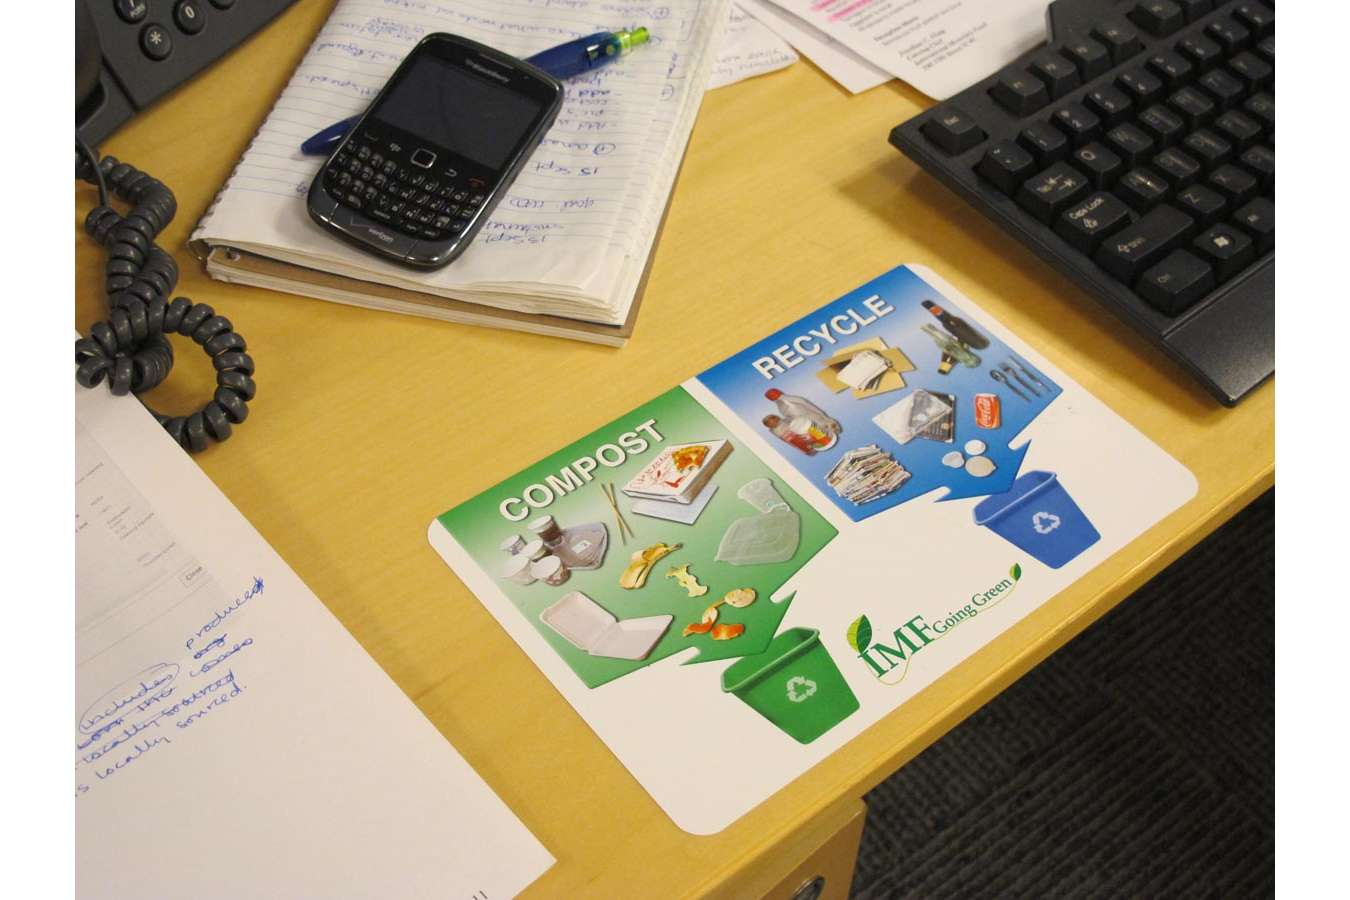 IMF Desk : Desk sticker reminds each employee what and where to recycle